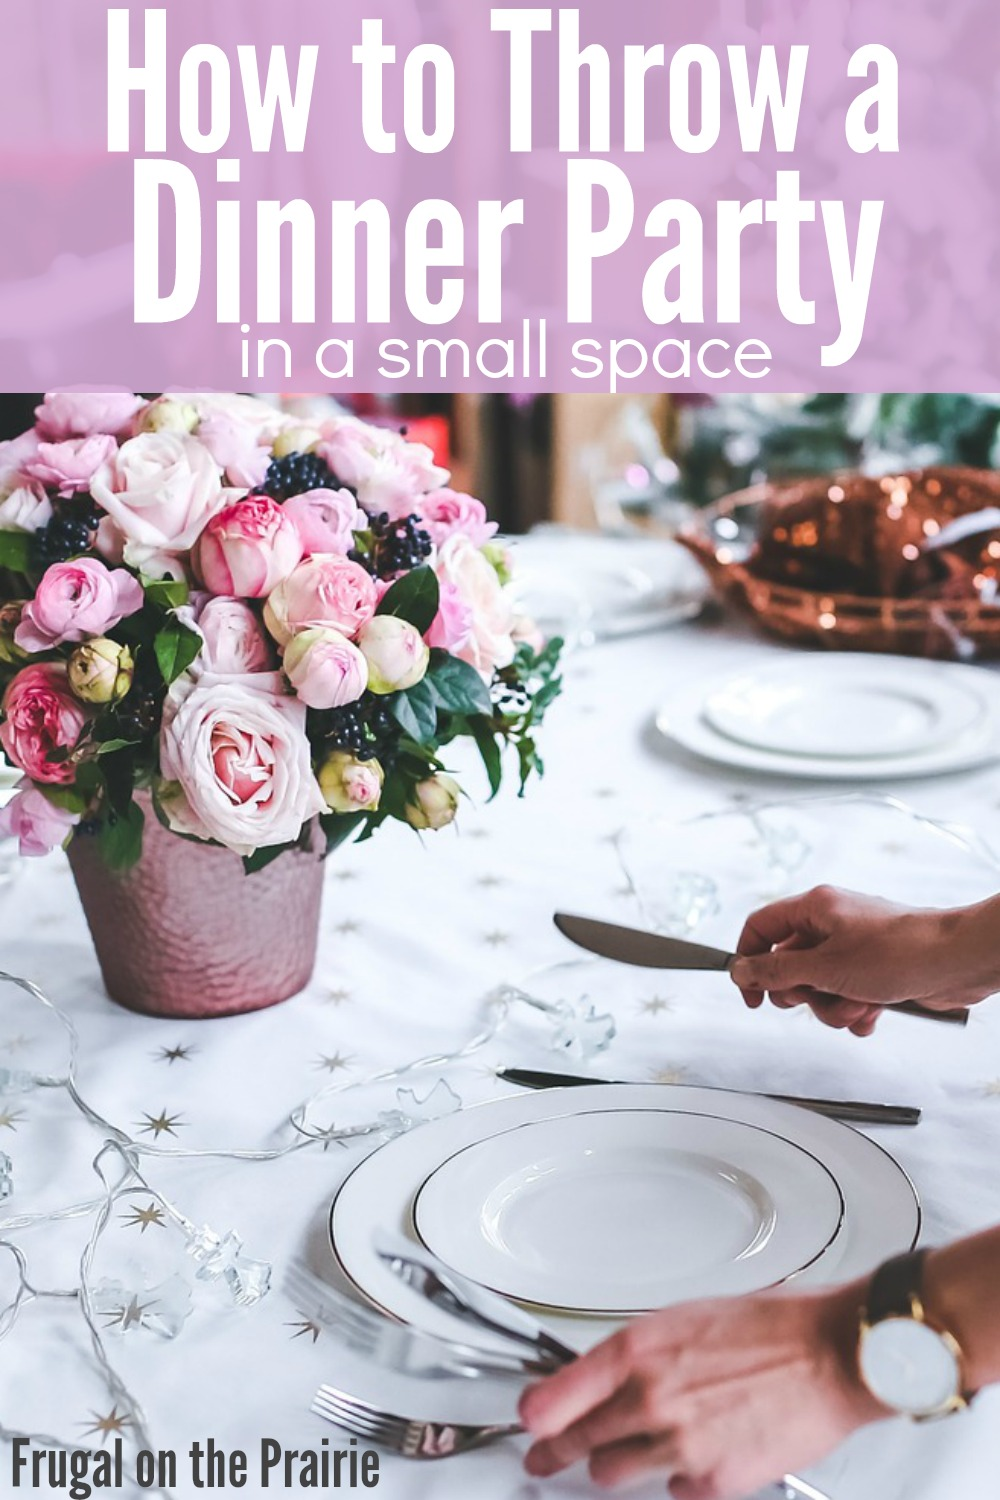 Wondering how to throw a dinner party in a small space? It's not impossible! Follow these easy tips for a stress-free, exciting night with your friends.